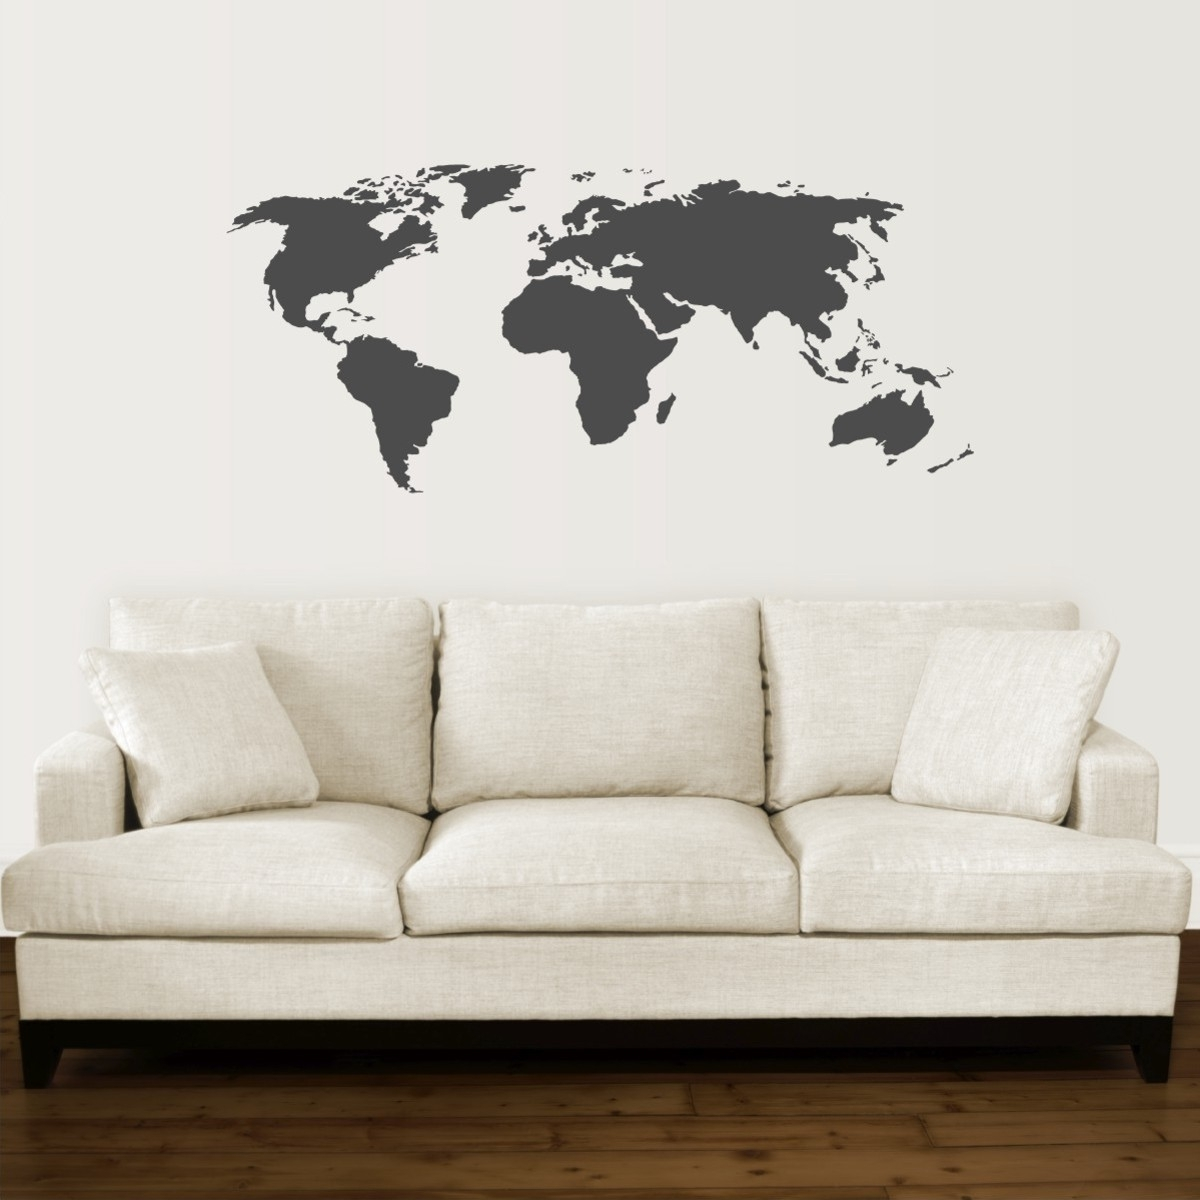 17 Cool Ideas For World Map Wall Art – Live Diy Ideas Pertaining To Best And Newest Cool Wall Art (View 1 of 15)